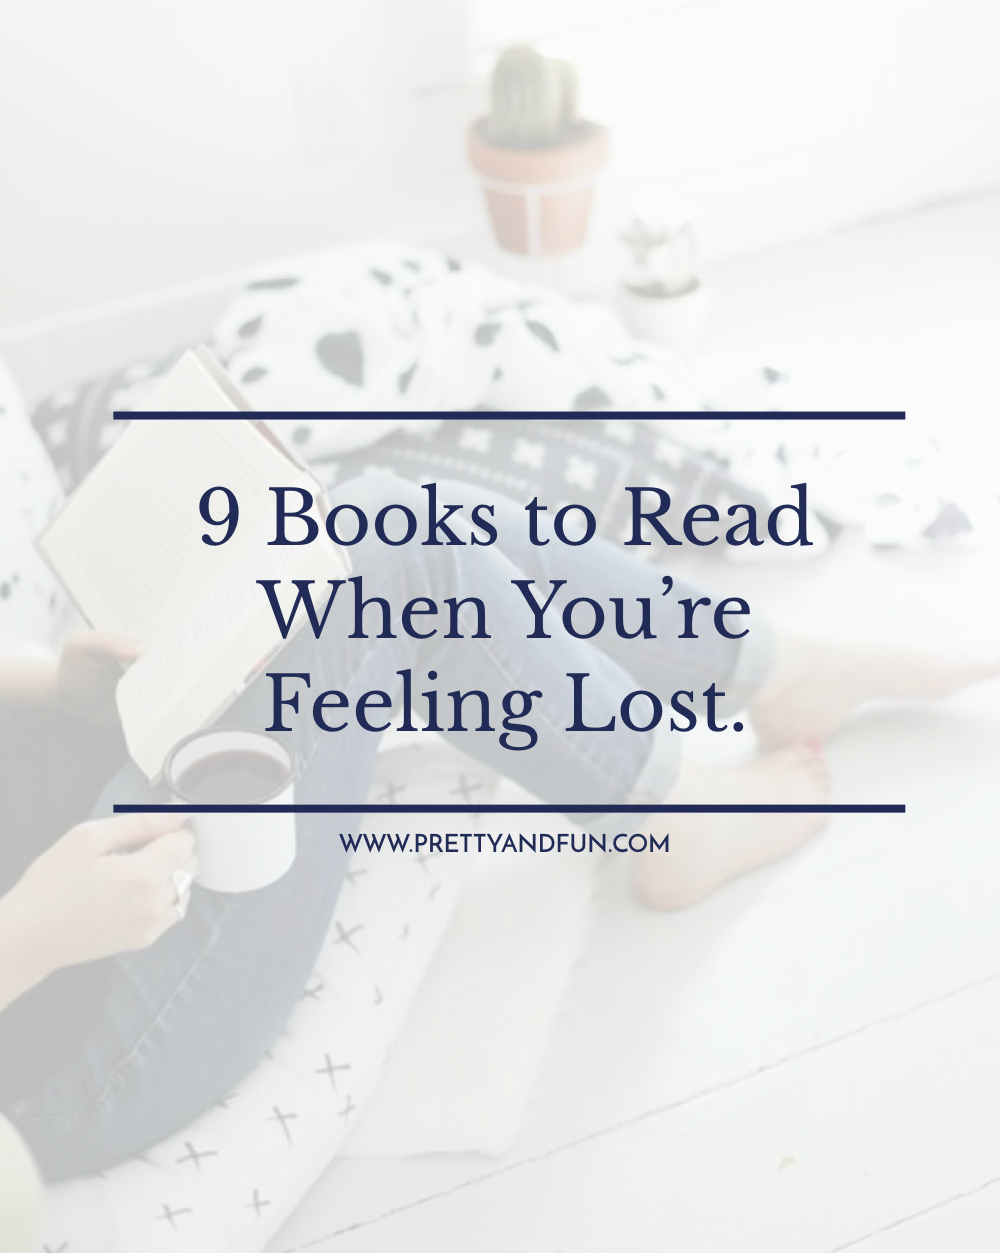 9 Books to Read When You're Feeling Lost